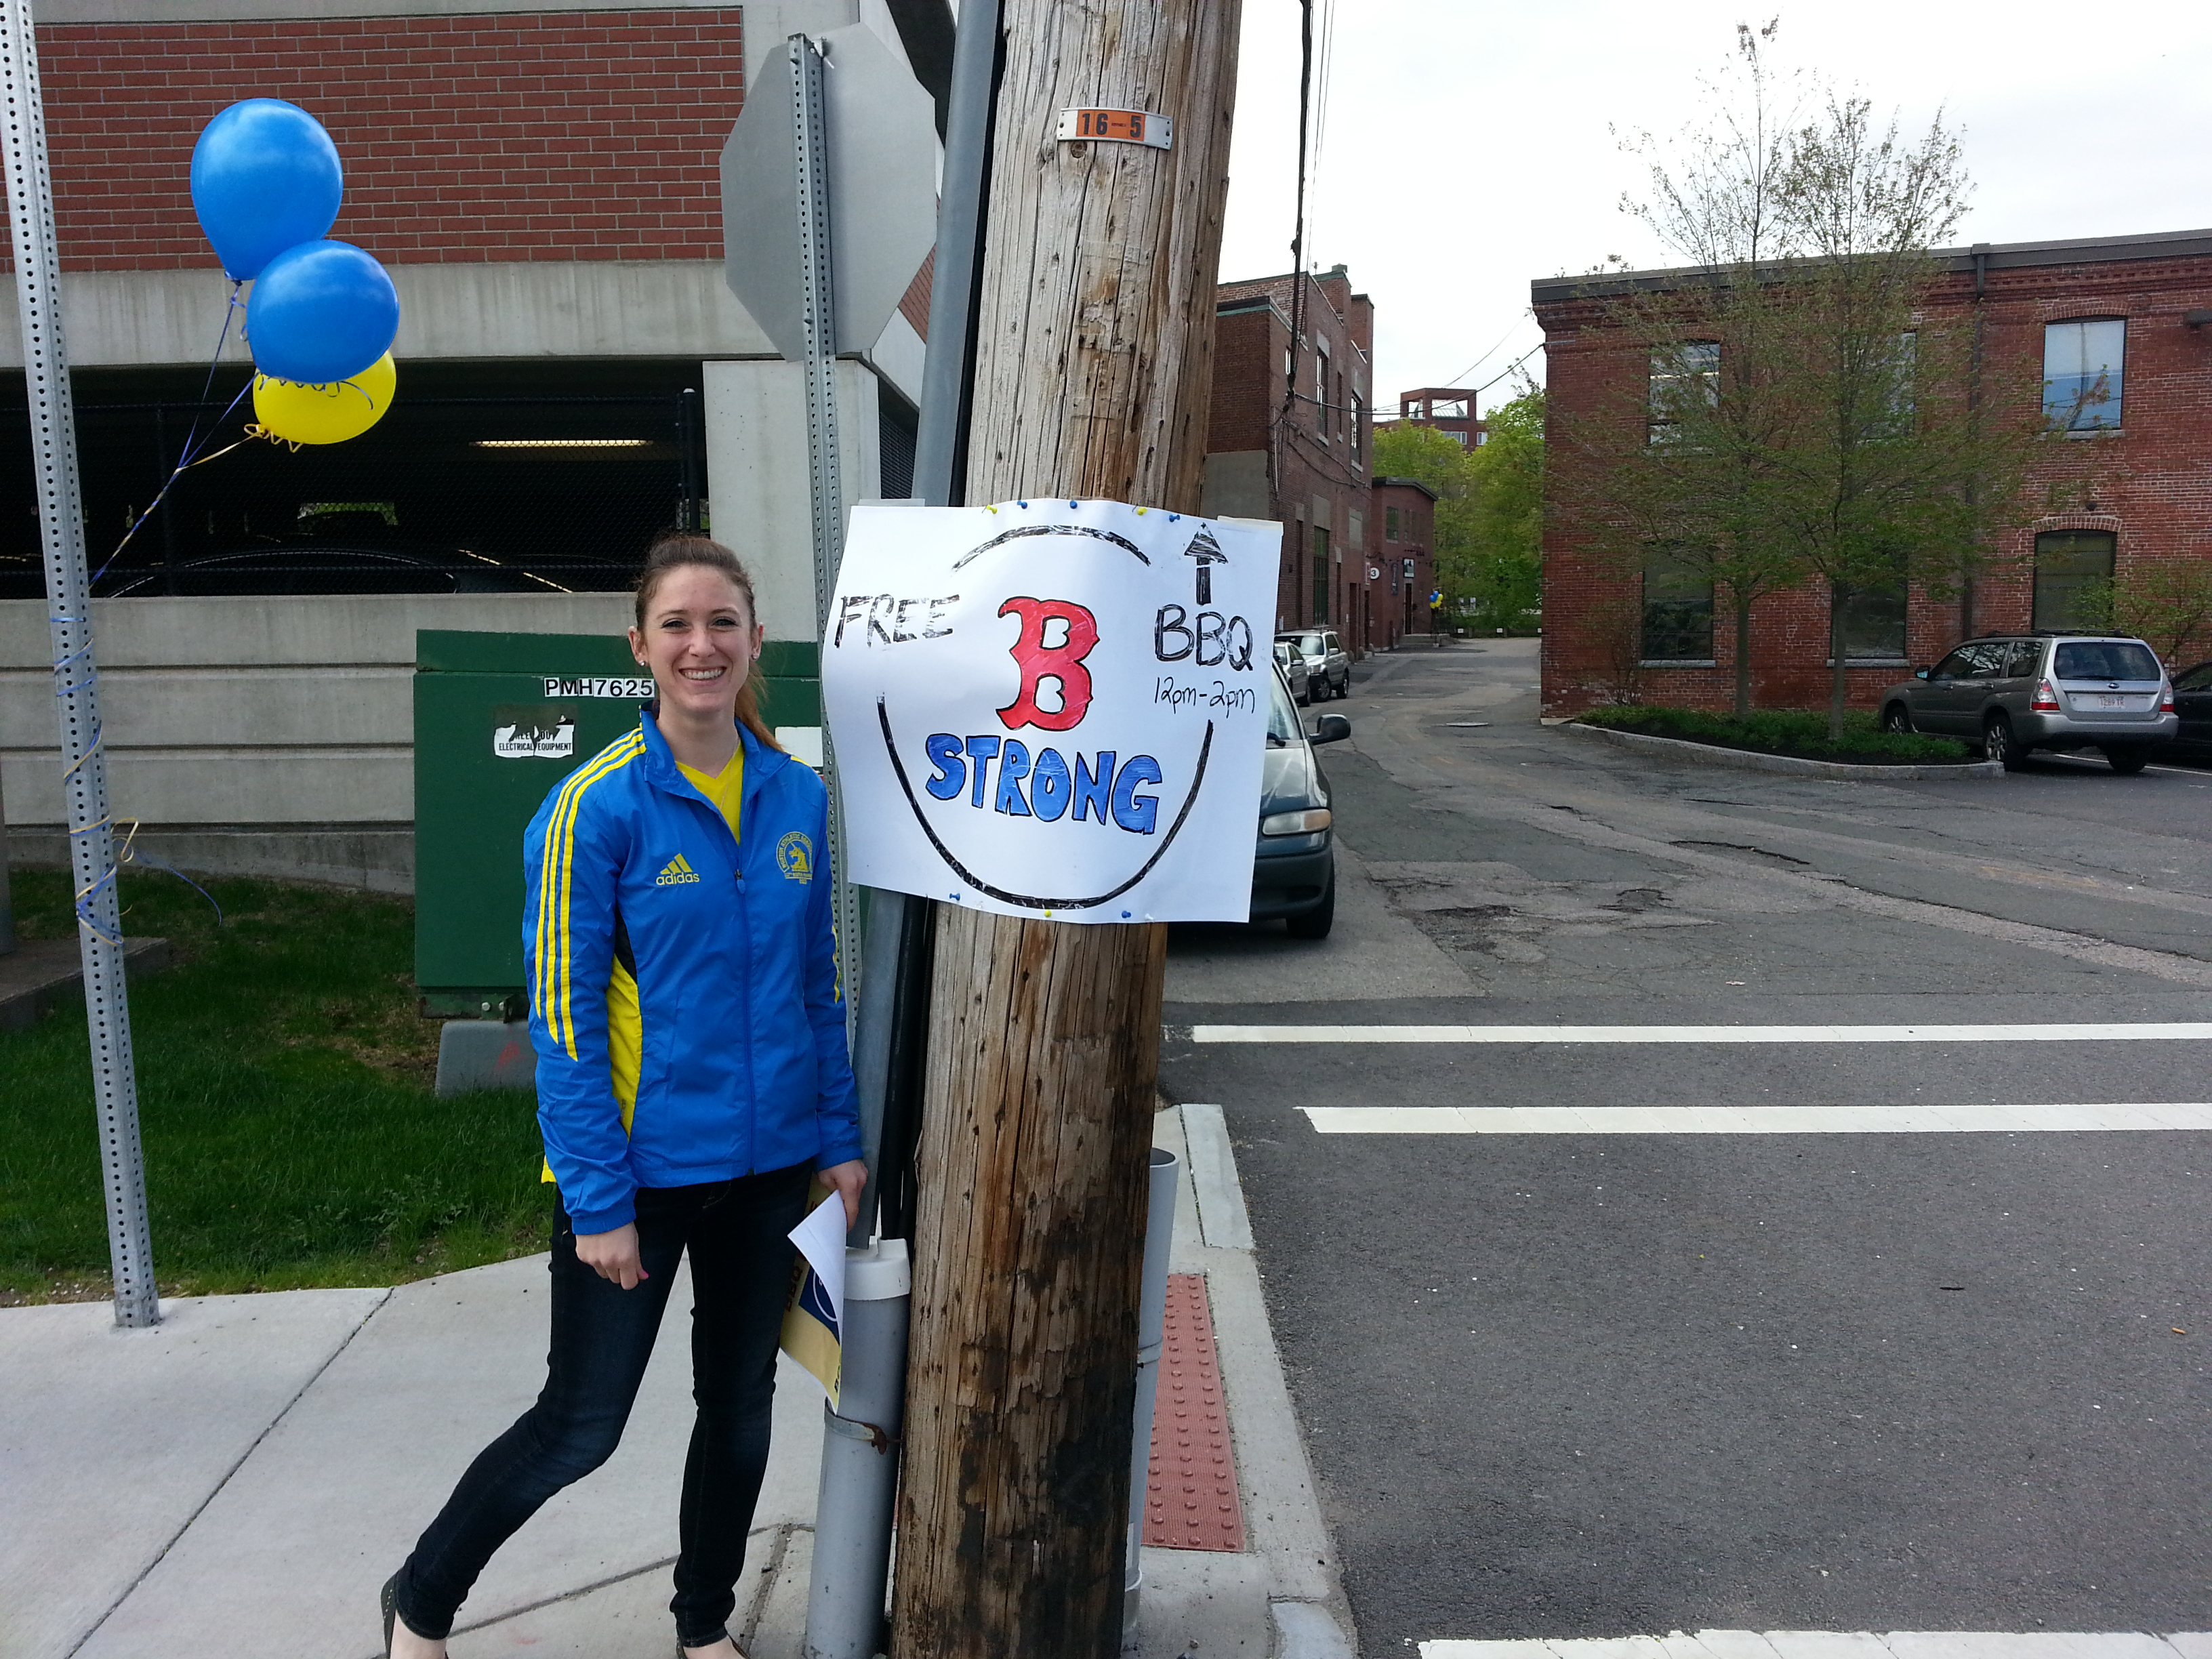 Outfitting the neighborhood for the Boston Strong BBQ